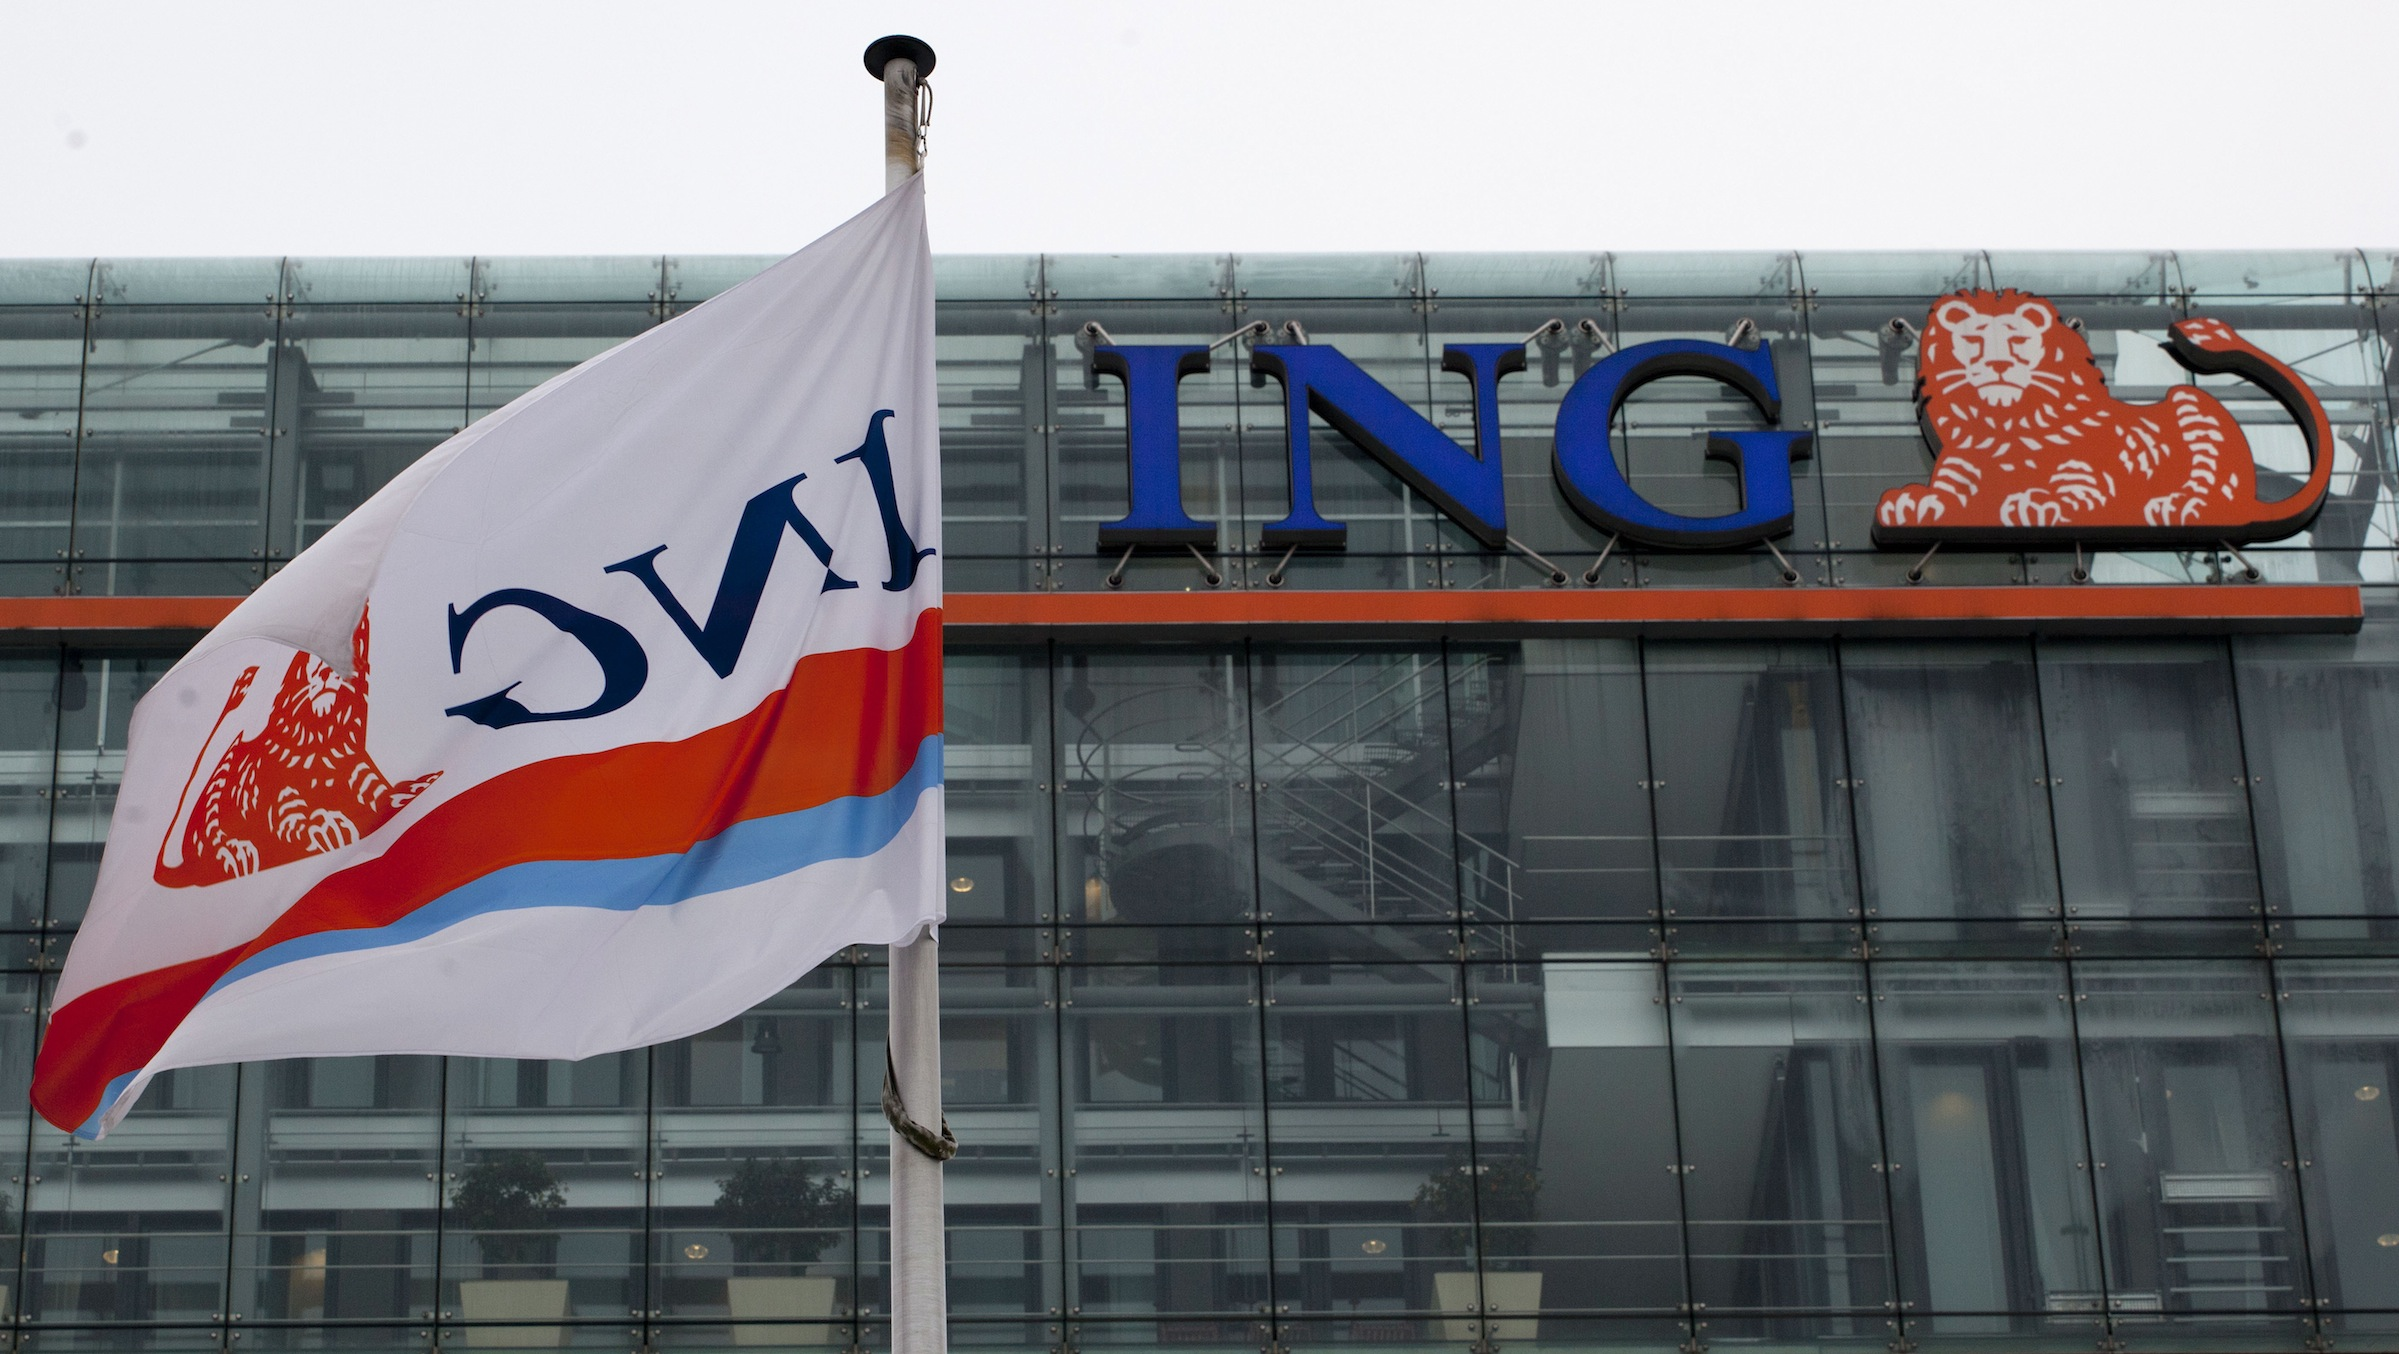 A branded flag flies outside the ING head office in Amsterdam, Thursday, Feb. 9, 2012. One-off gains from the sale of businesses helped Dutch bank and insurance group ING Groep NV post a significant profit advance in the fourth quarter of last year even though Europe's debt crisis increasingly weighed on business. (AP Photo/Peter Dejong)